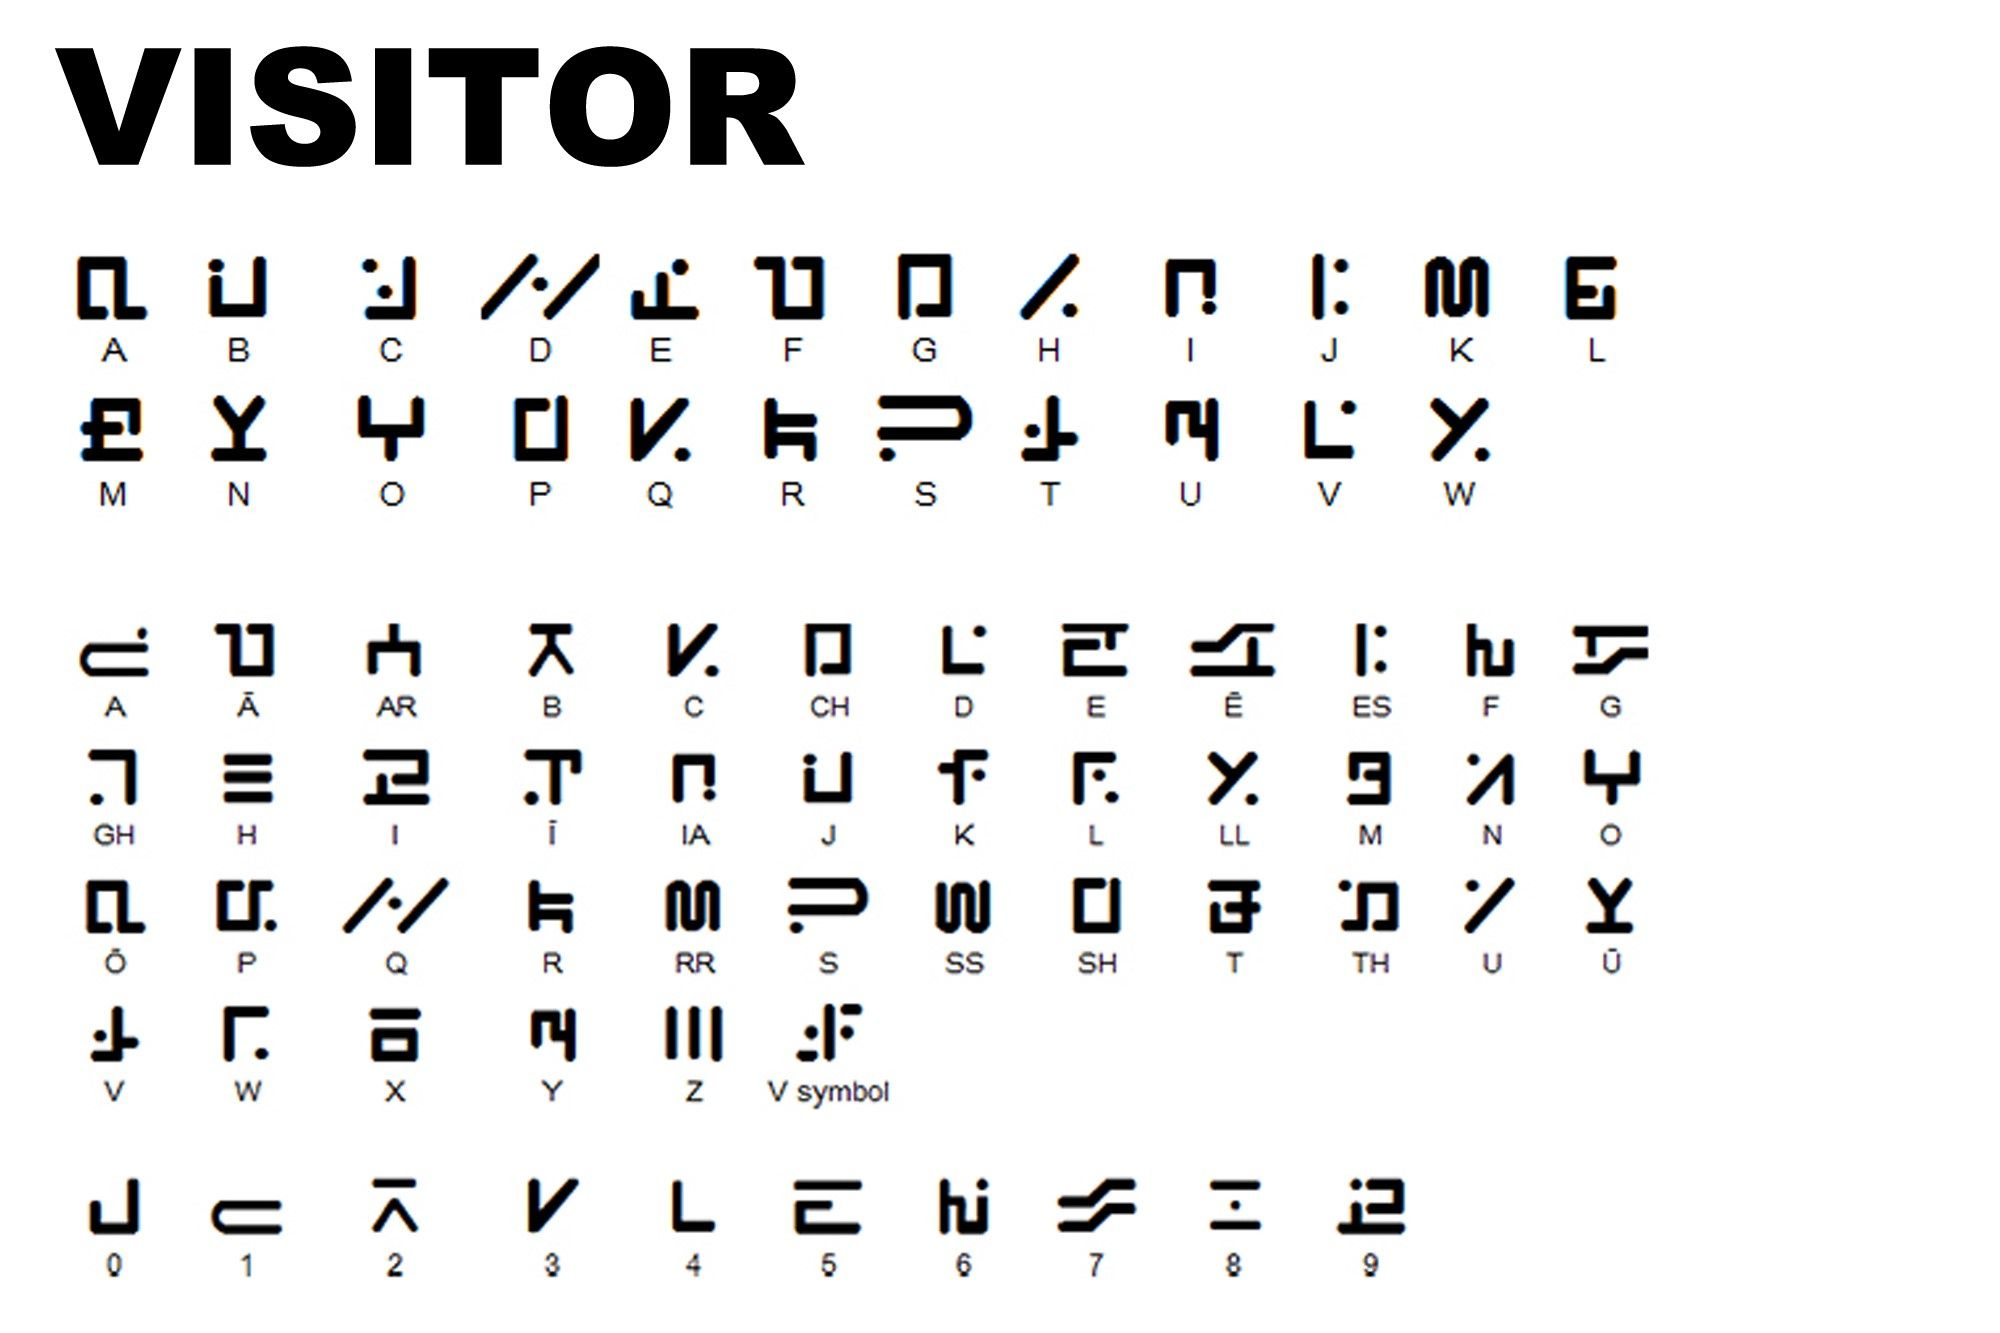 Alphabets 1984 et 2009 The Visitor alphabet appears in the